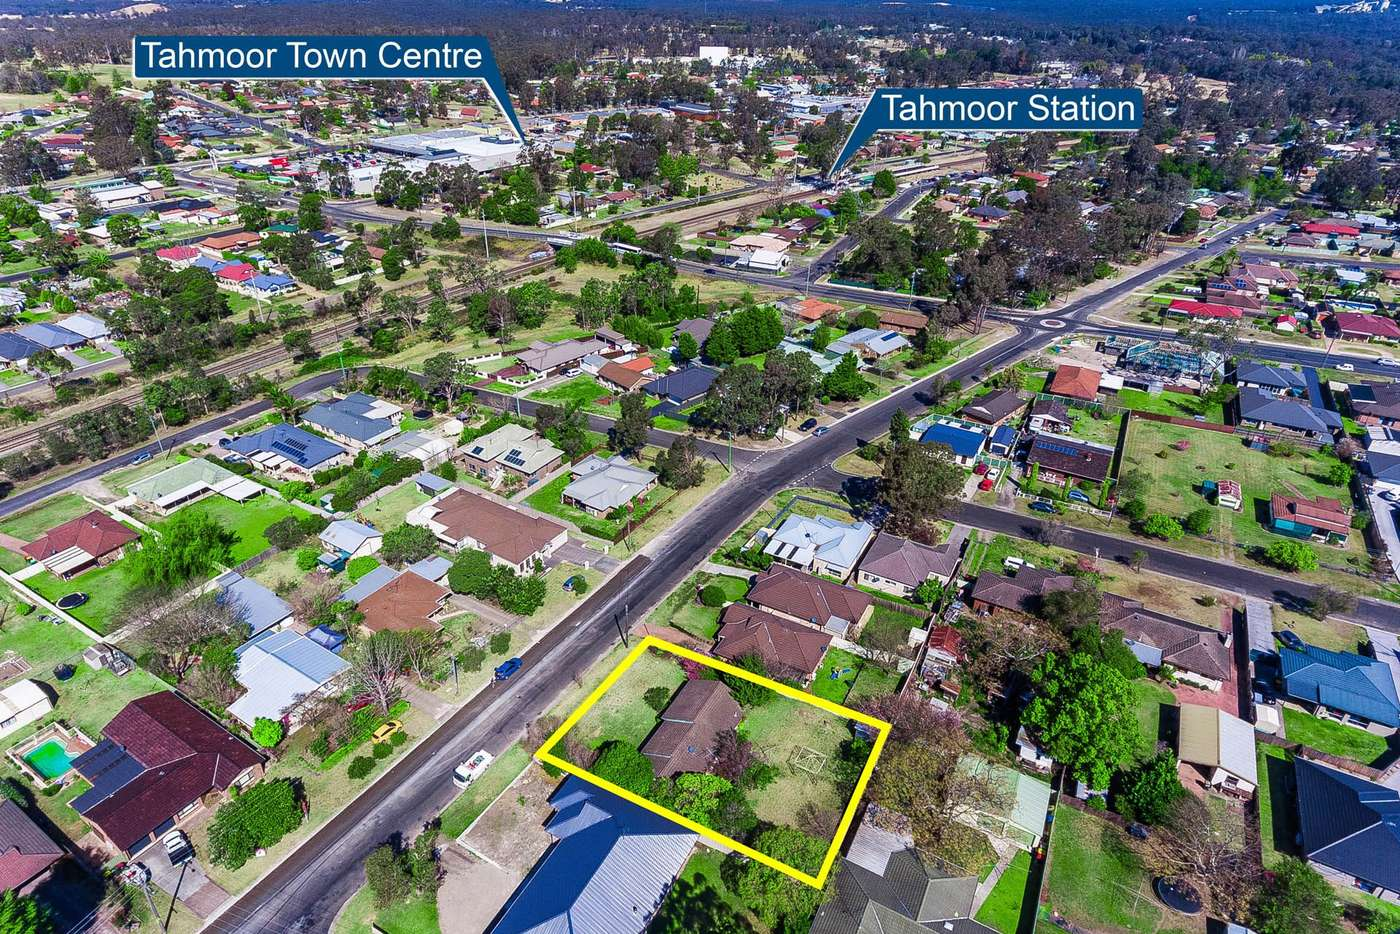 Main view of Homely house listing, 25 Castlereagh Street, Tahmoor NSW 2573